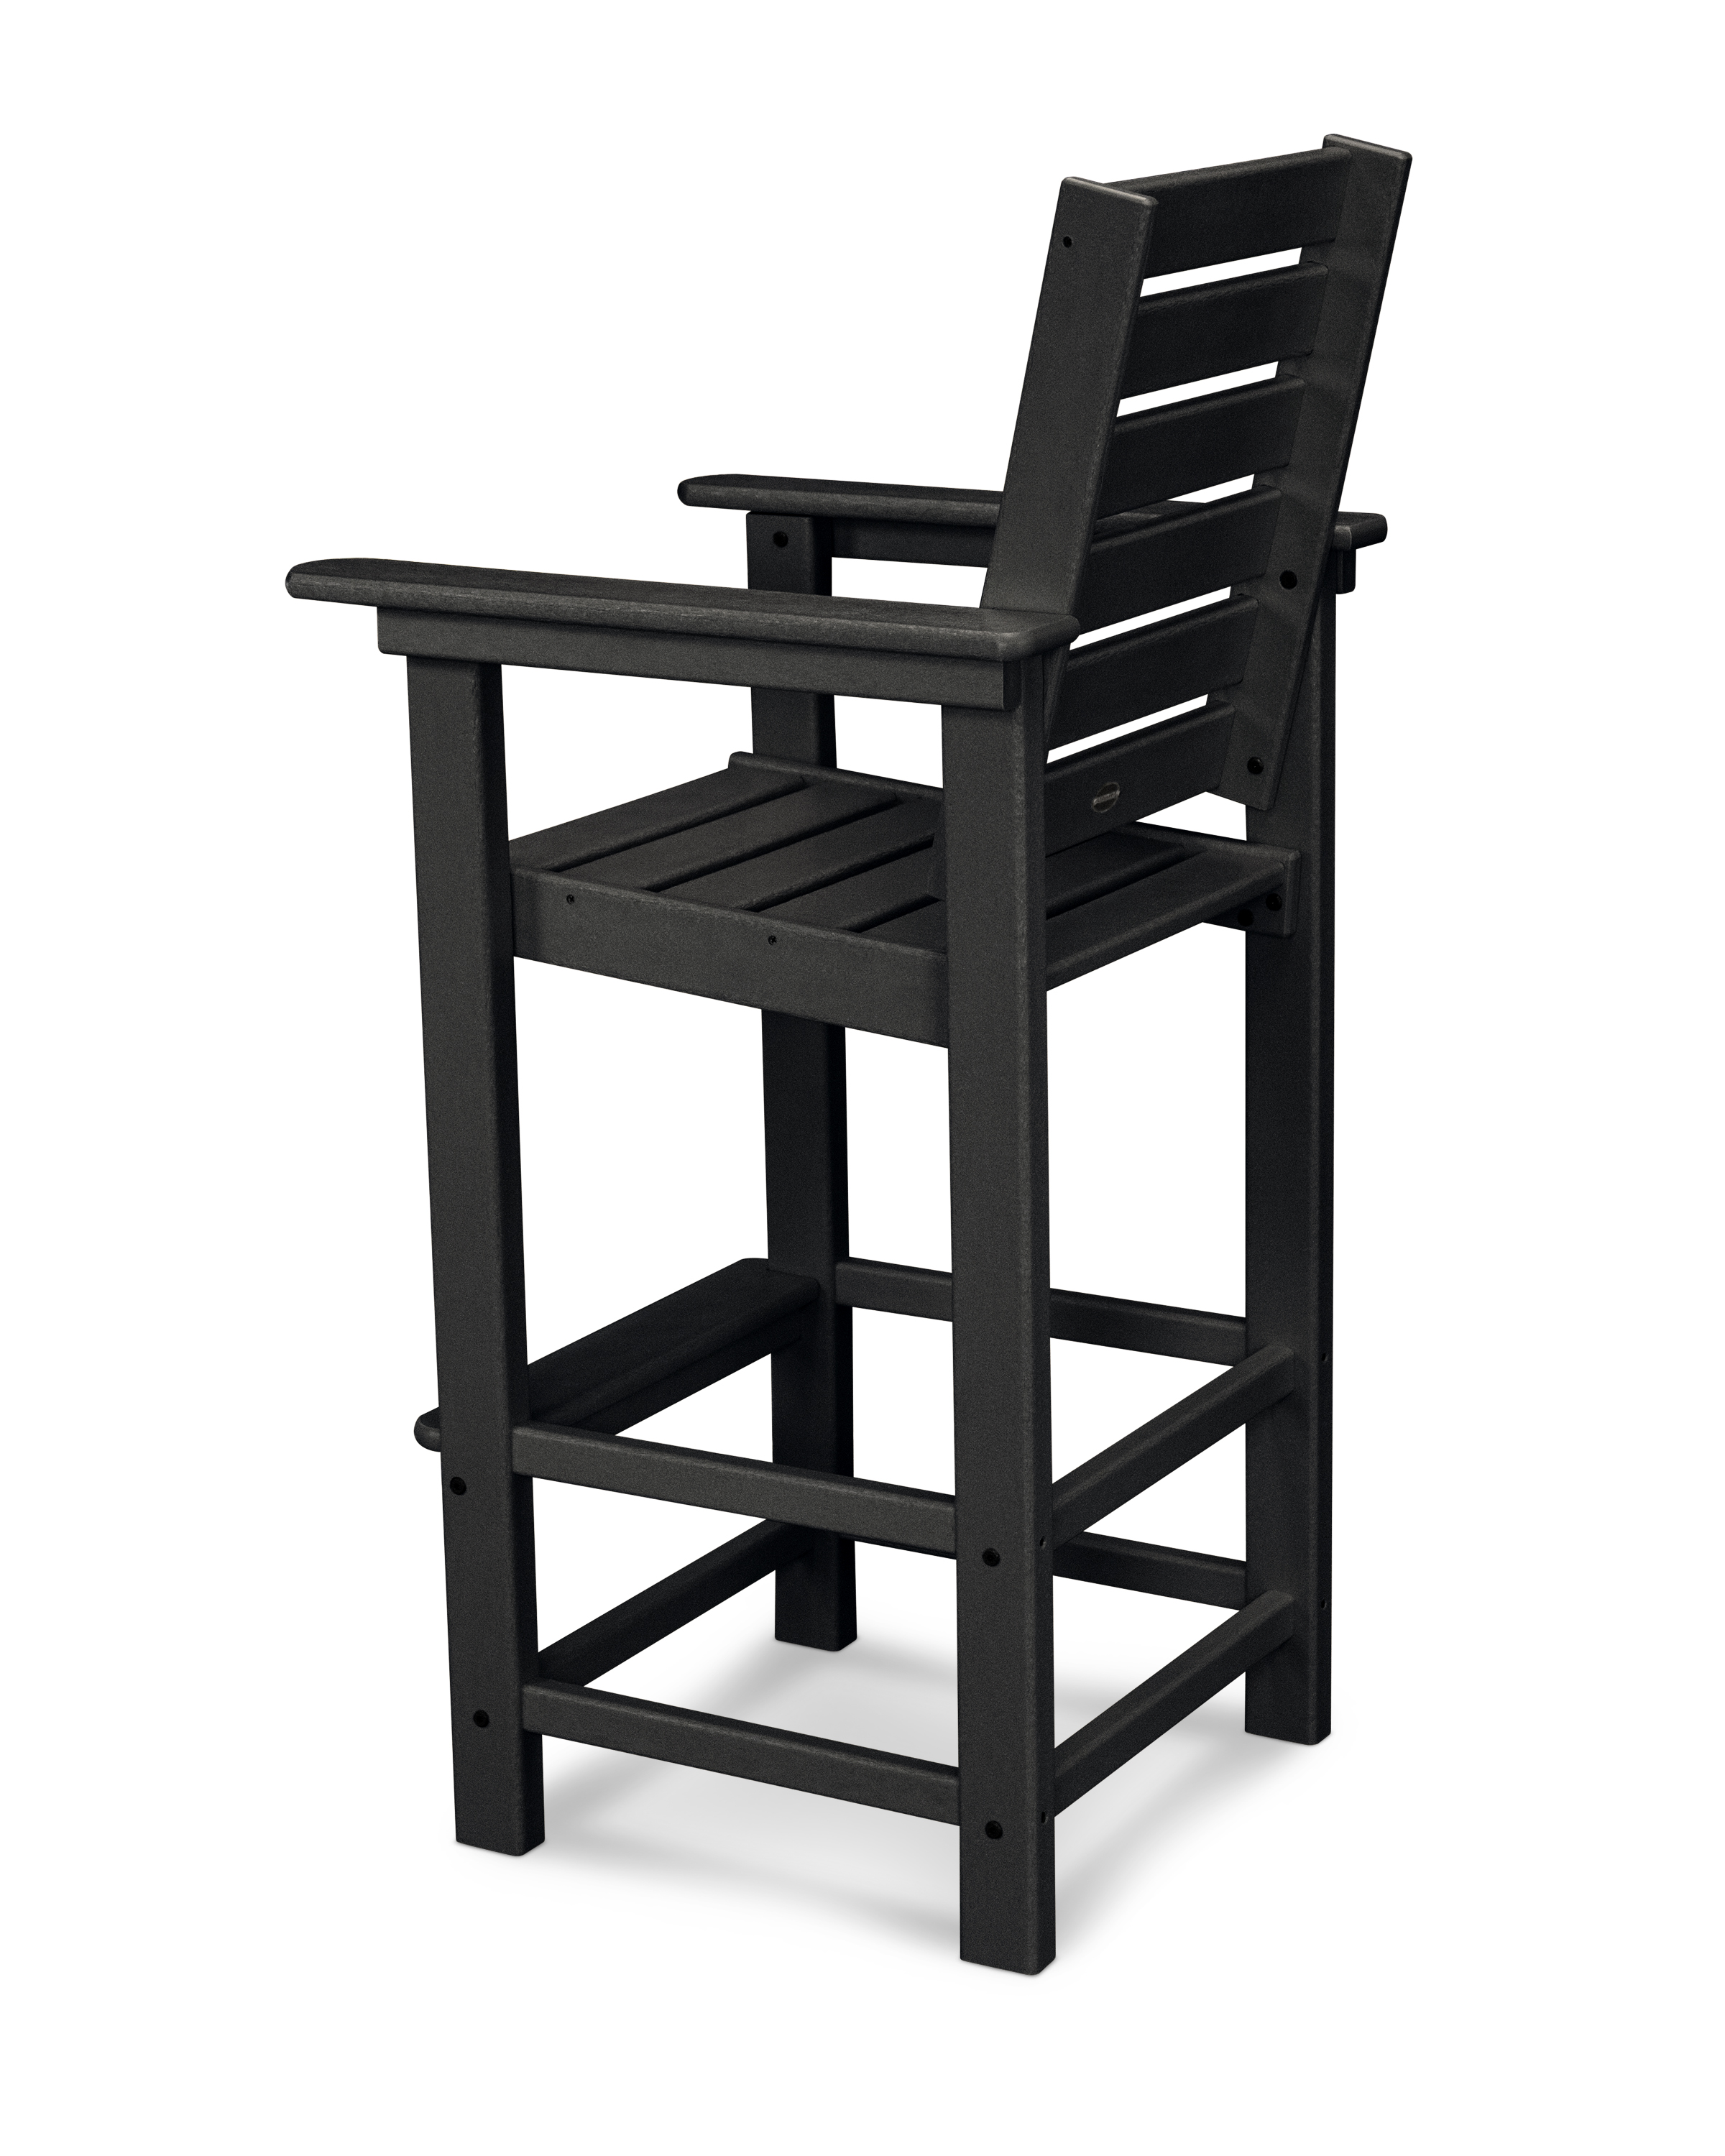 By Itself Or Paired With One Of Our Bar Height Tables, This Tall Chair Adds Contemporary Style To Any Outdoor Entertainment Area. Polywood Furniture Is Constructed Of Solid Polywood Lumber That